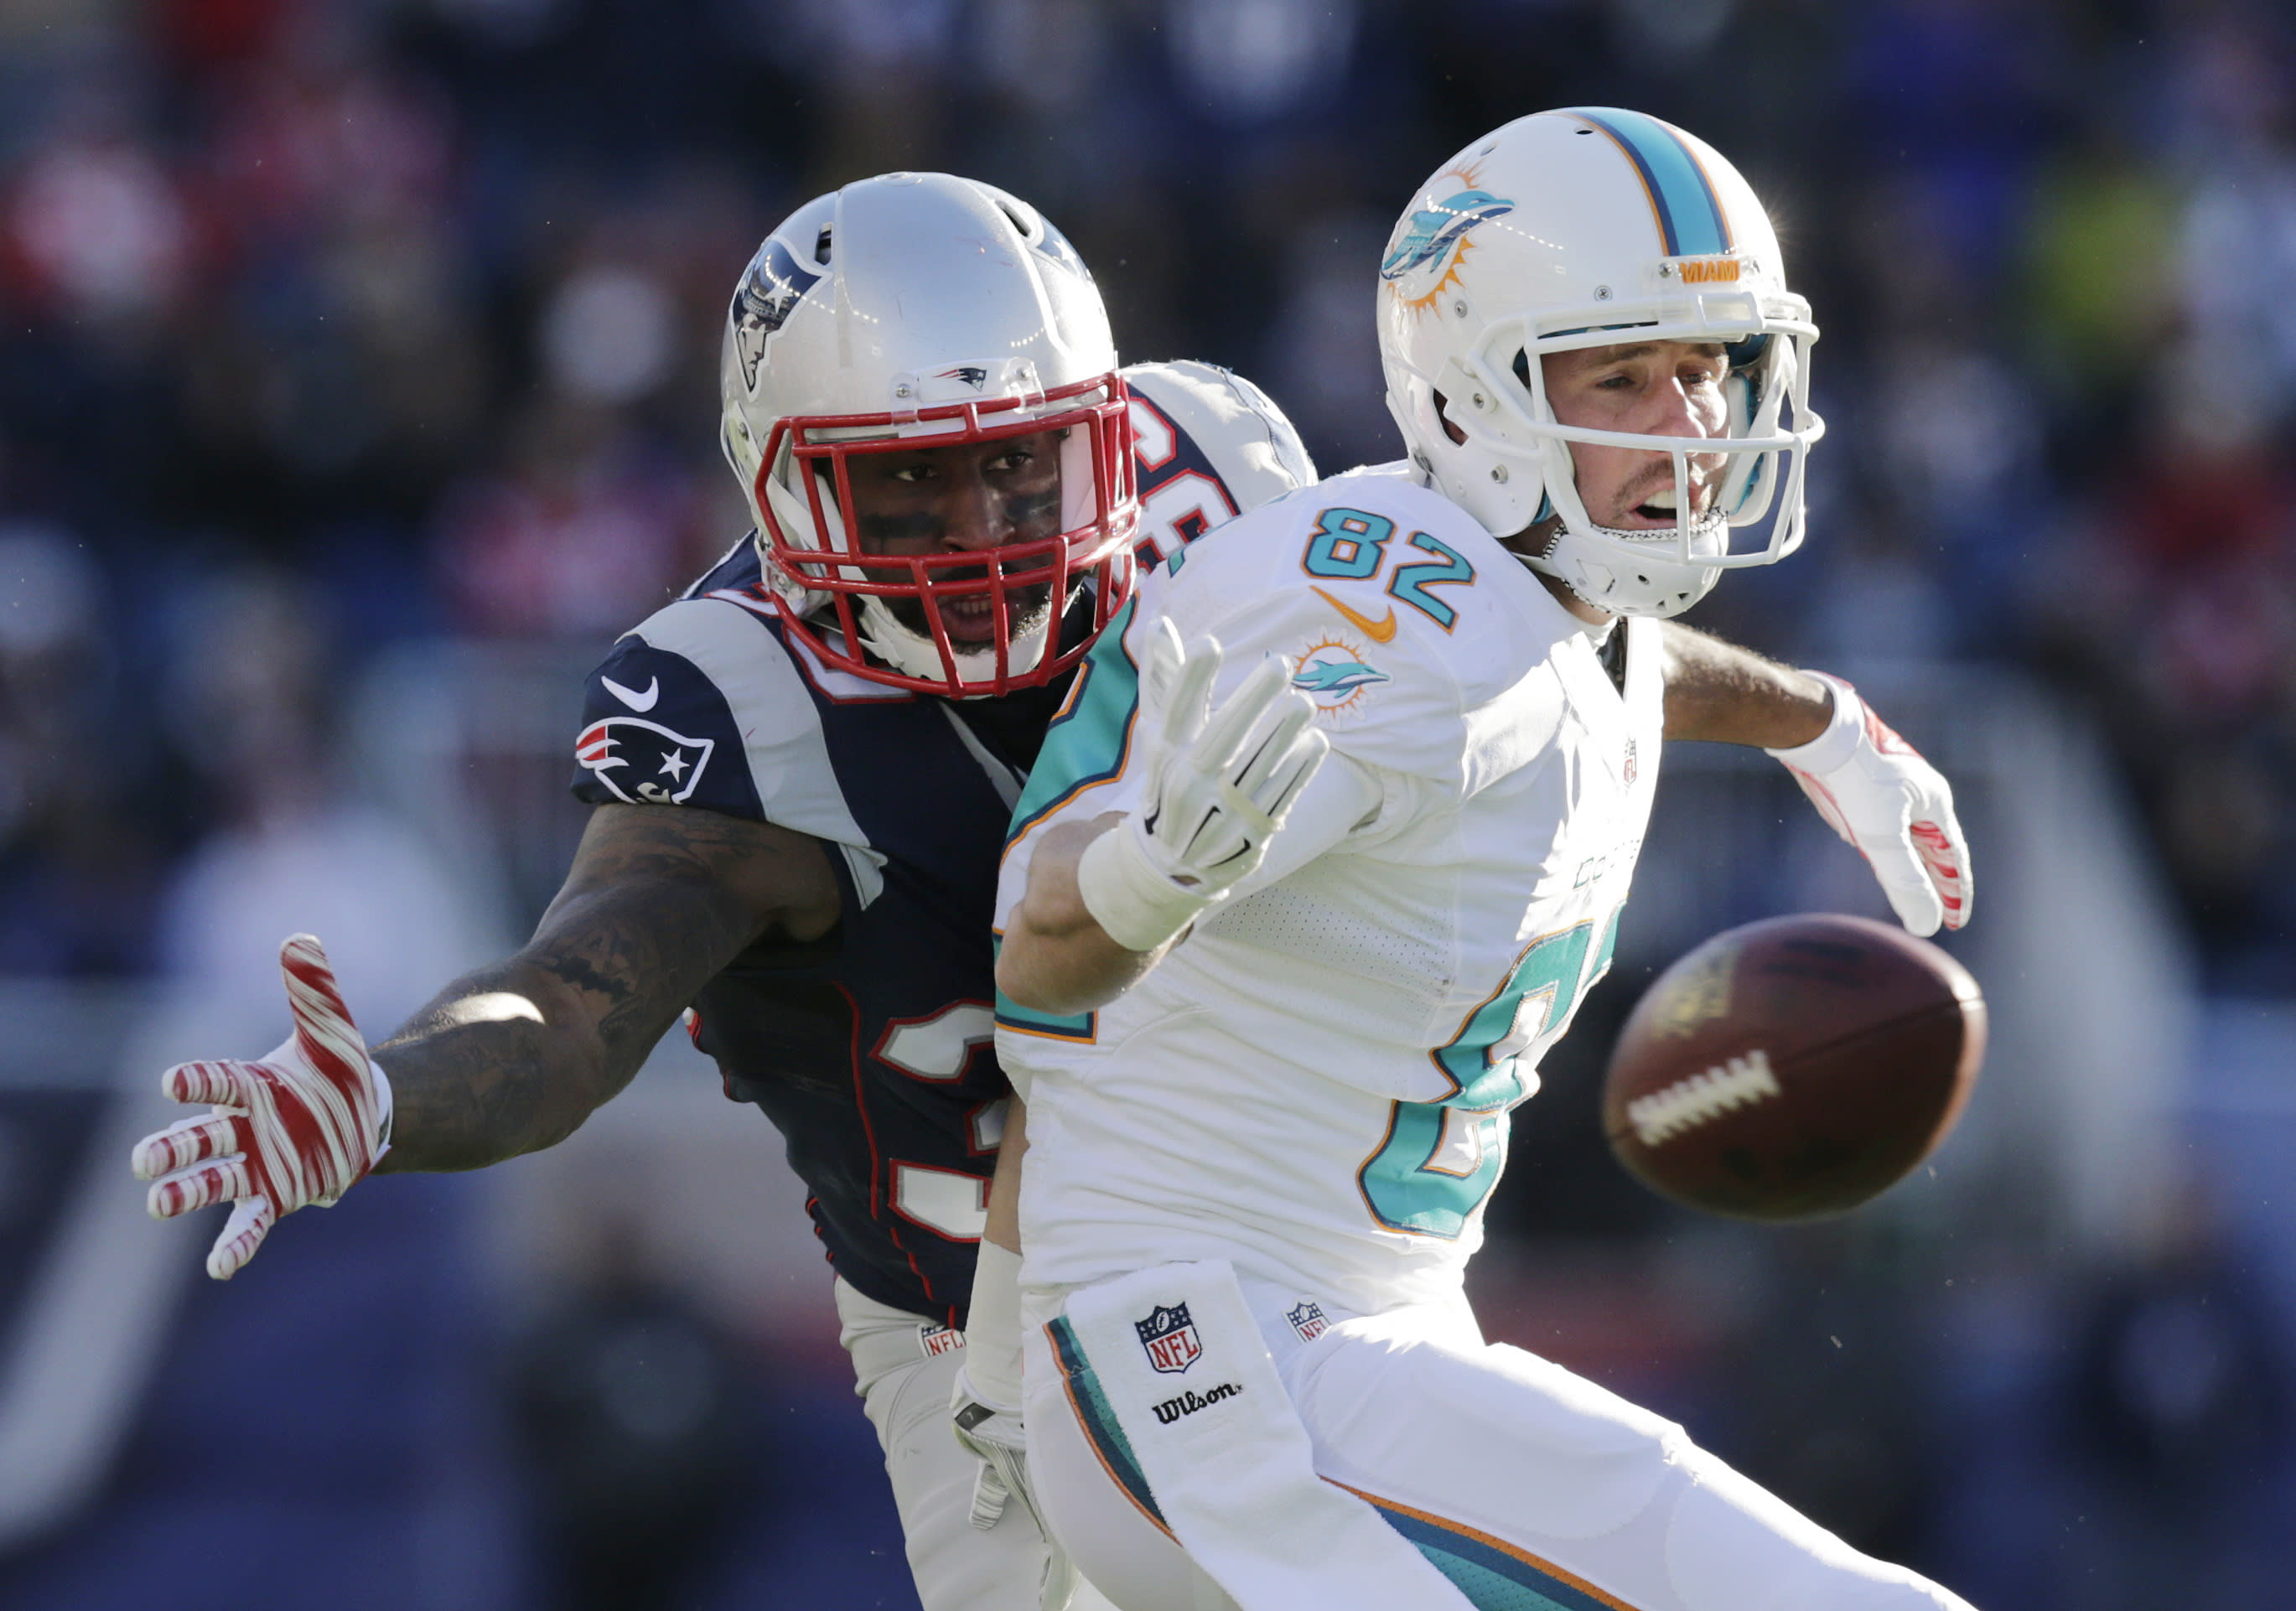 Receivers Hartline and Gibson released by Dolphins